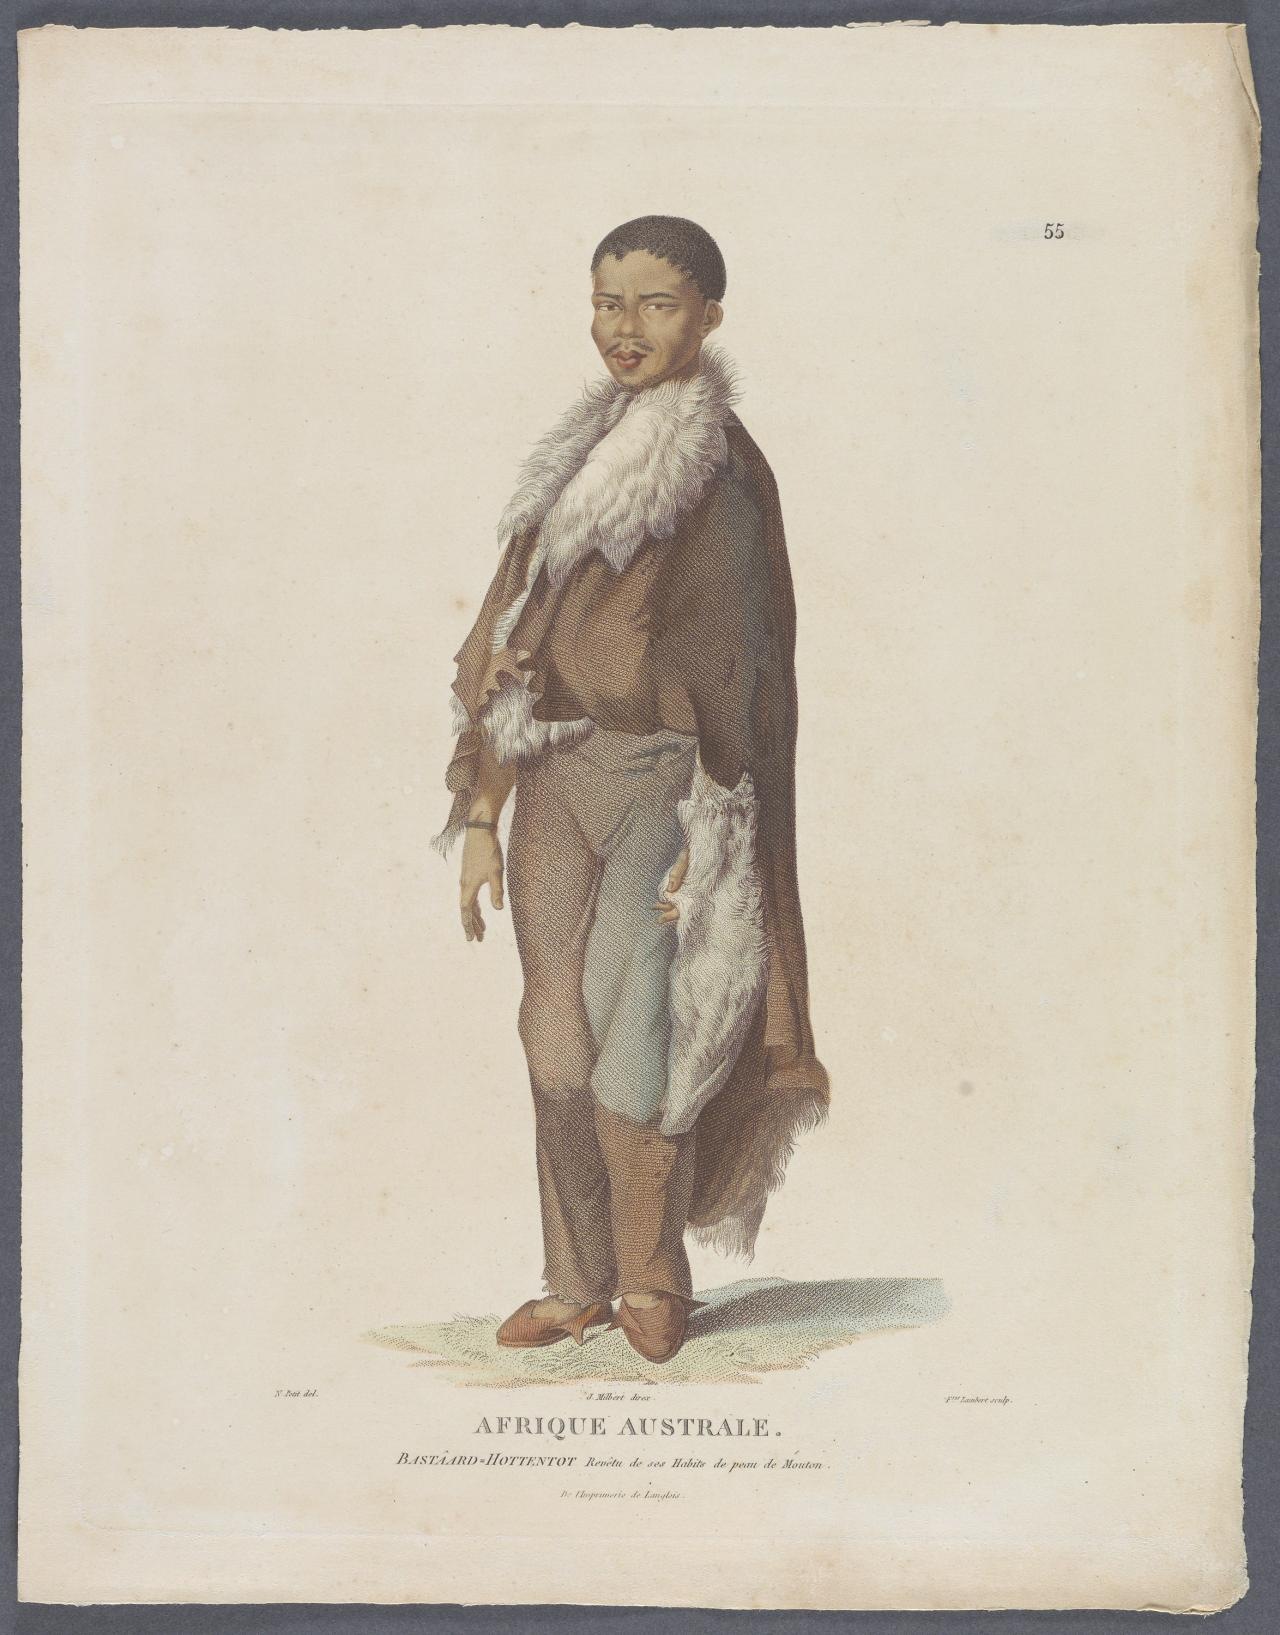 Bastard Hottentot or mixed blood Hottentot, wearing his sheepskin clothes